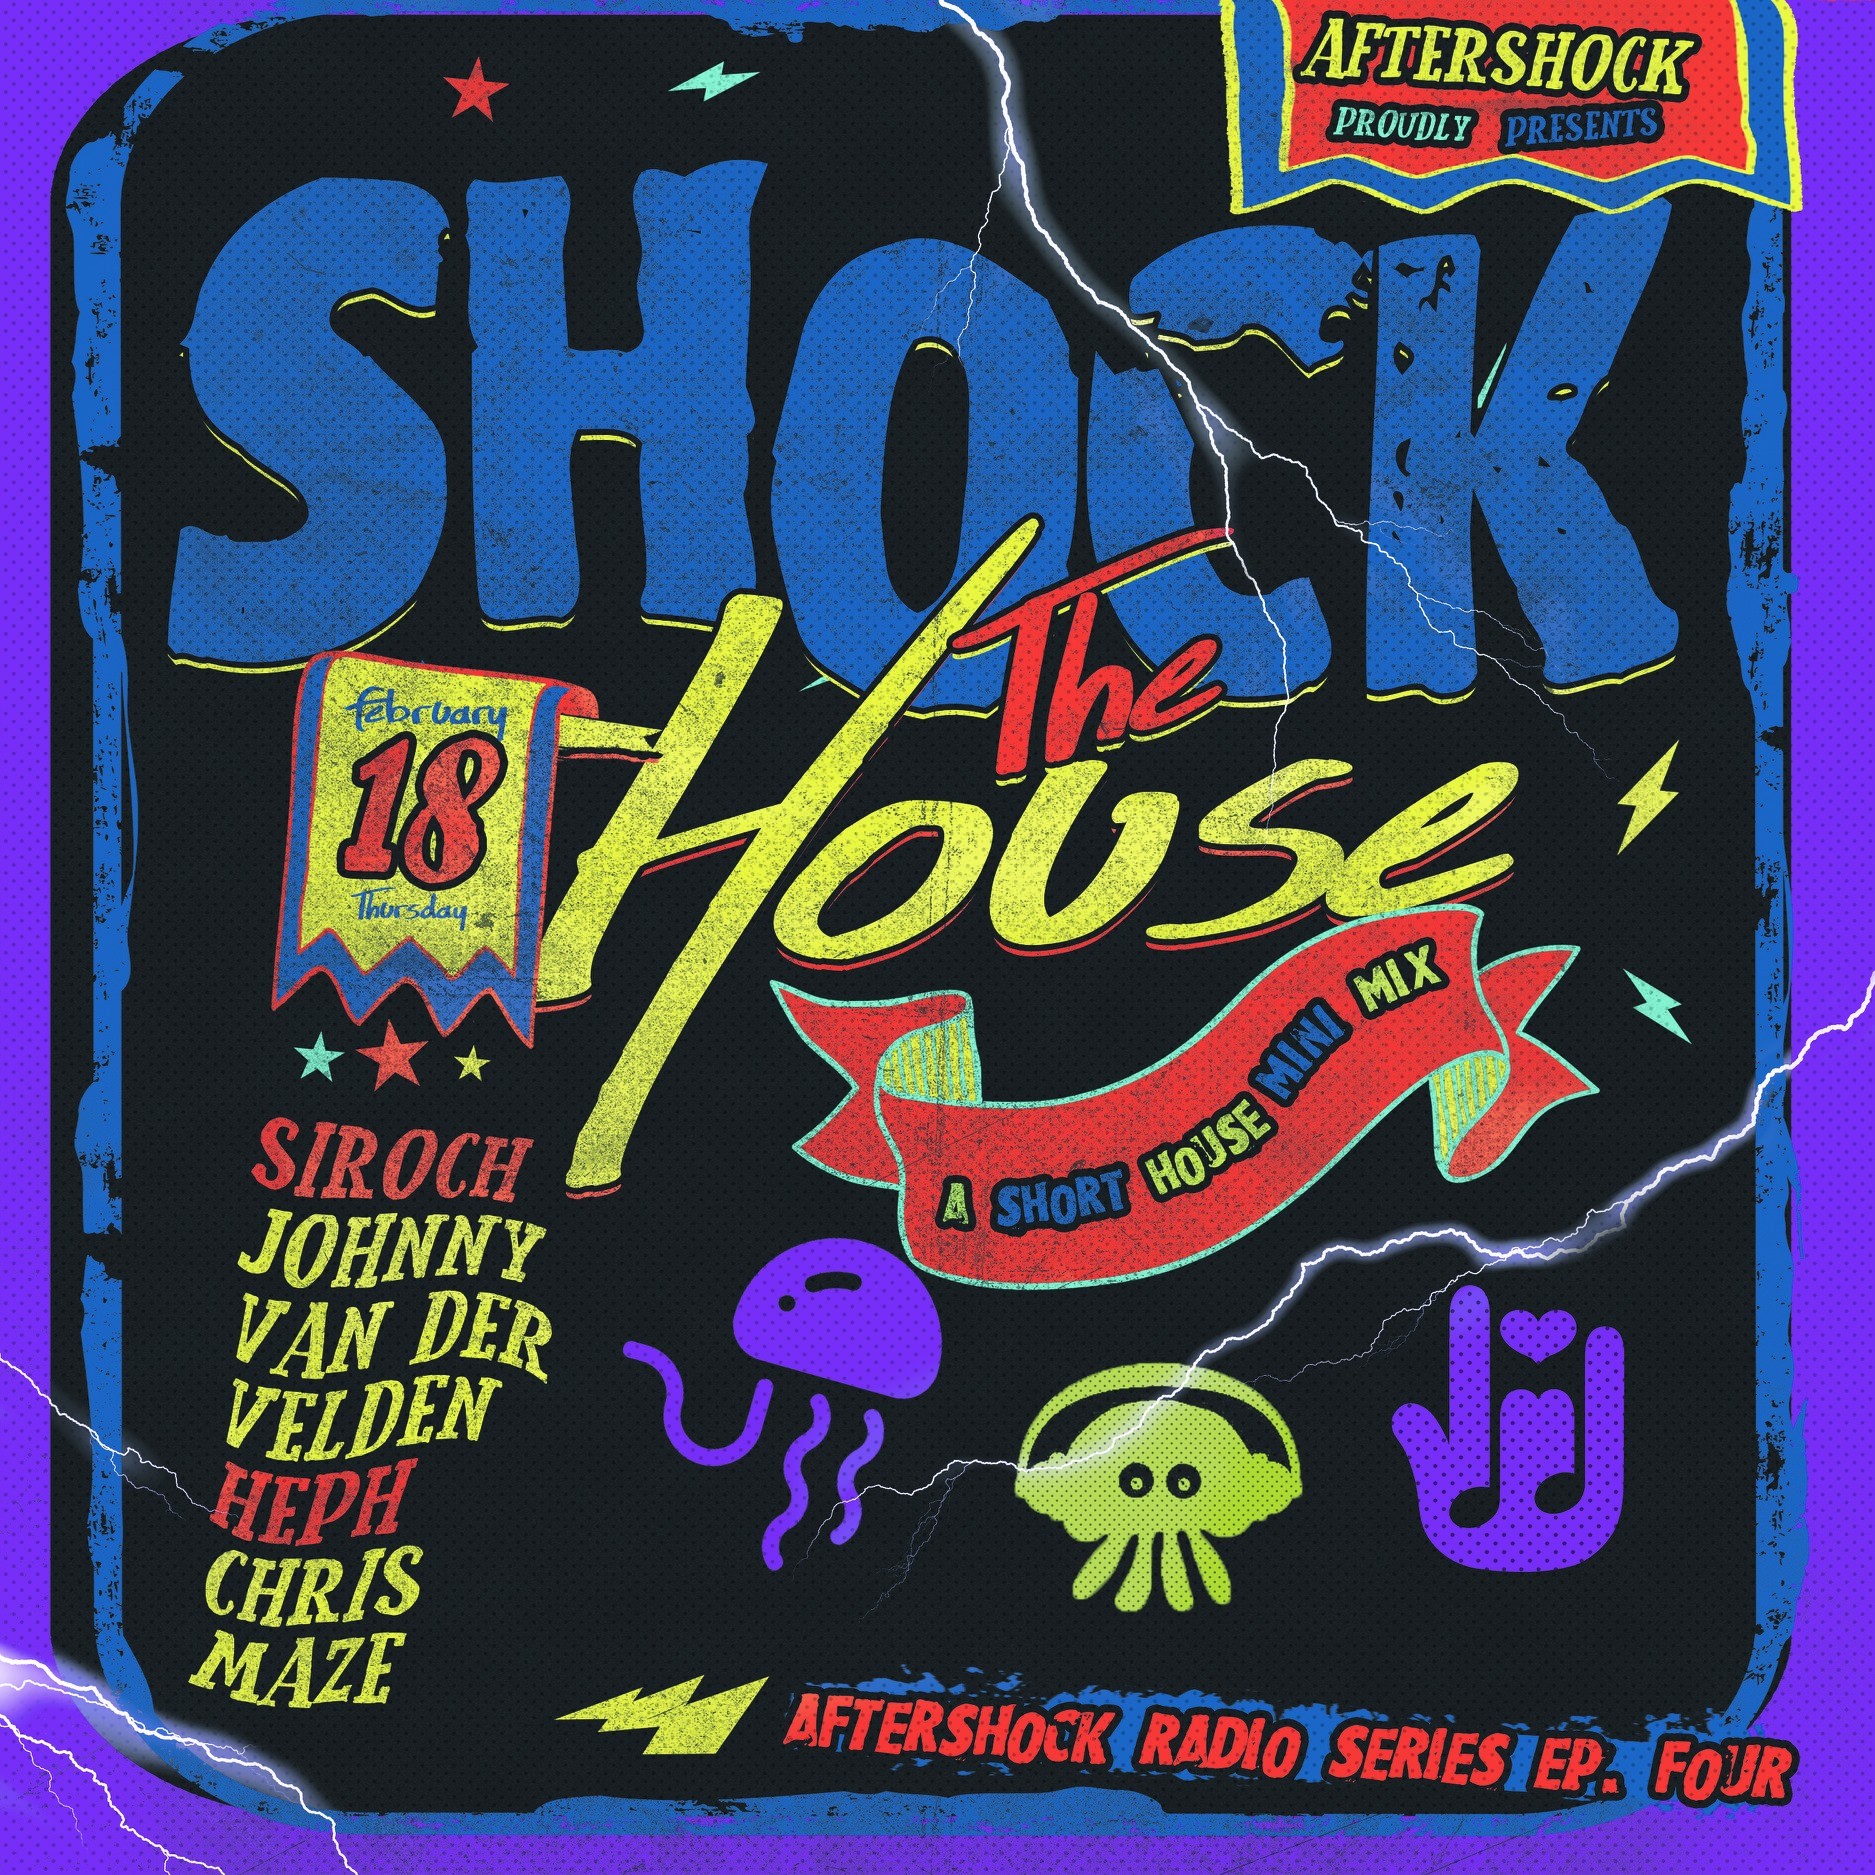 AfterShock presents Shock The House- a mini mix featuring Siroch, Johnny Van Der Velden, Heph, and Chris Maze